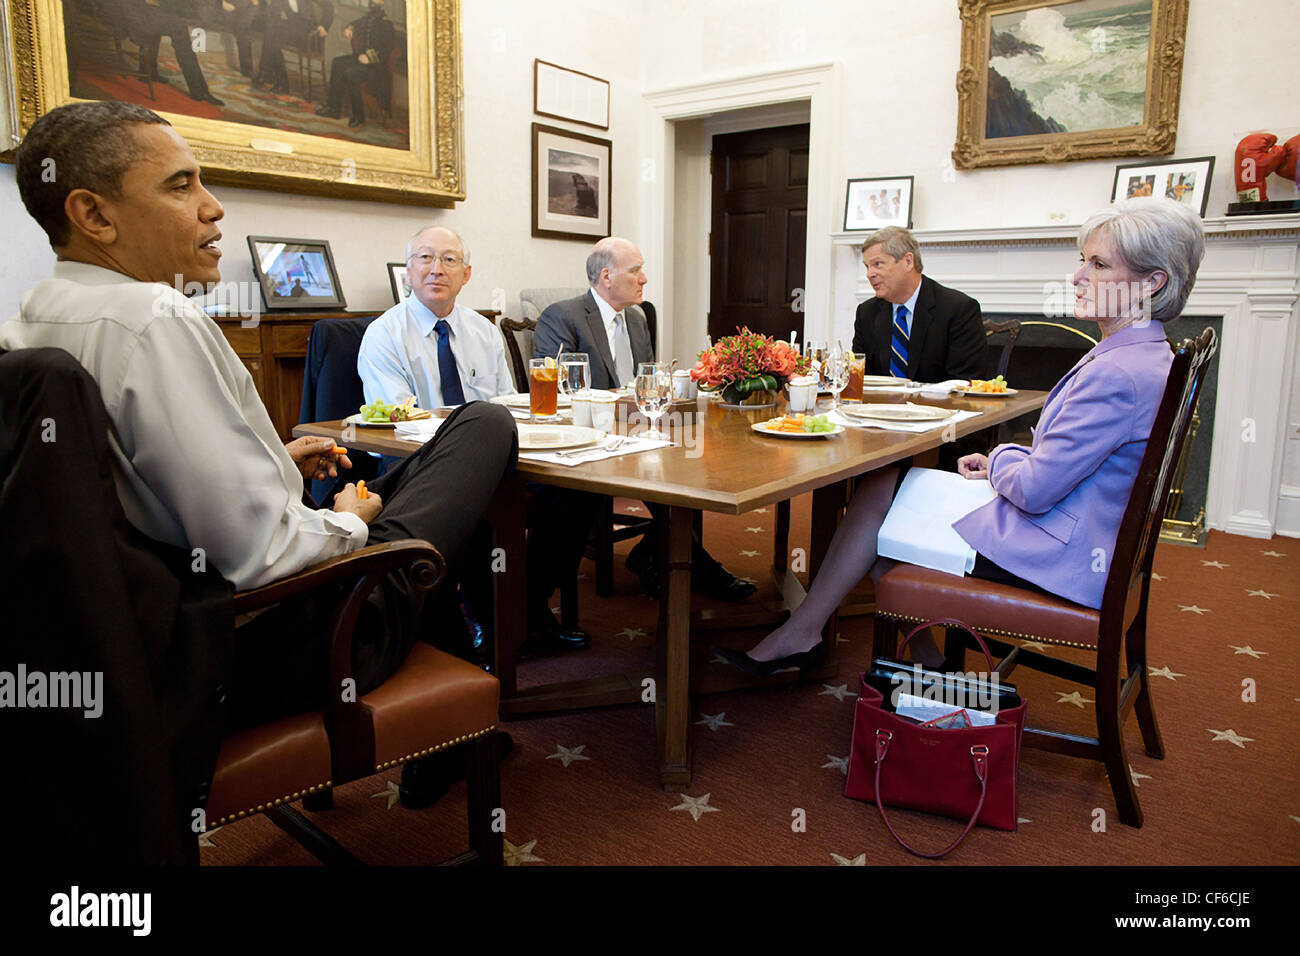 President Barack Obama has lunch with Cabinet secretaries in the ...